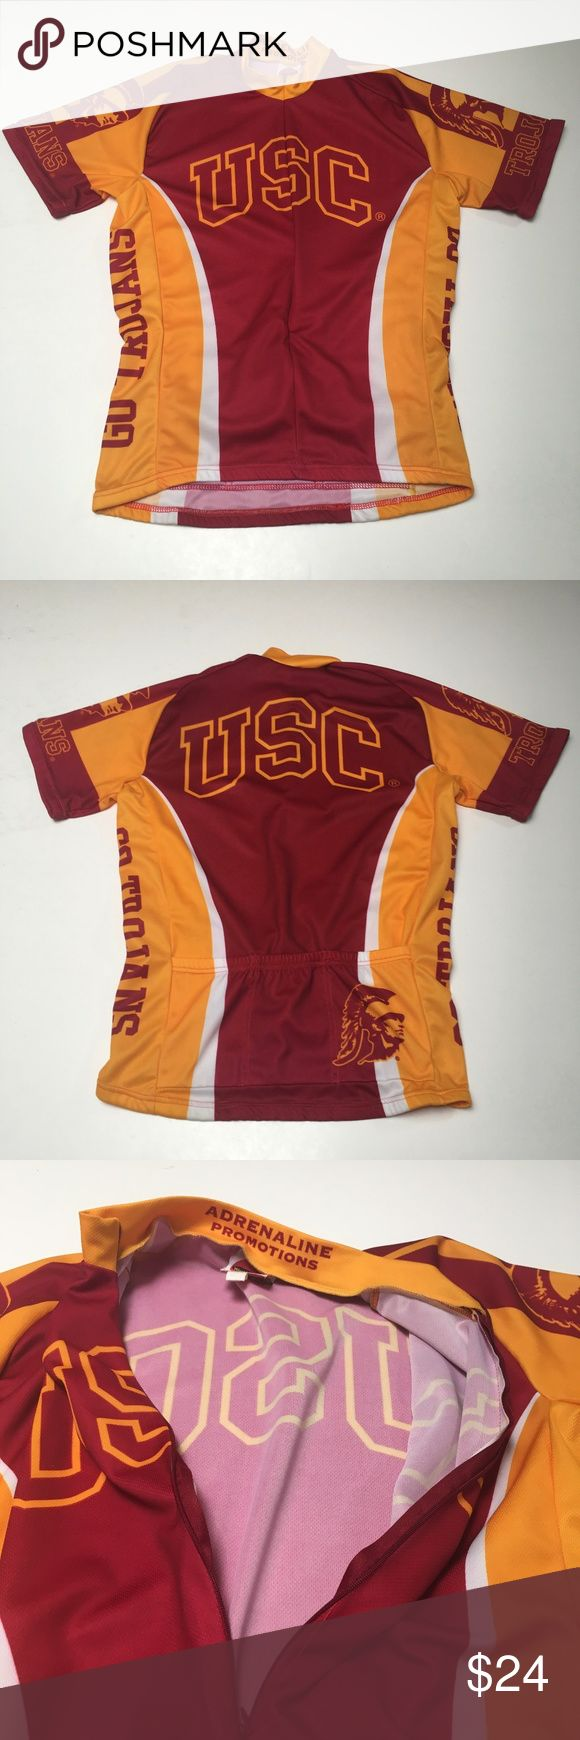 Vintage USC Trojans Bike Jersey Ride Fight On! Awesome vintage jersey Armband elastic dried out so it will be loose on your biceps Ride On! Fight On!  Please check measurements for fit reference  Smoke and pet-free storage Happy to answer any questions Thanks for looking World Jerseys Other